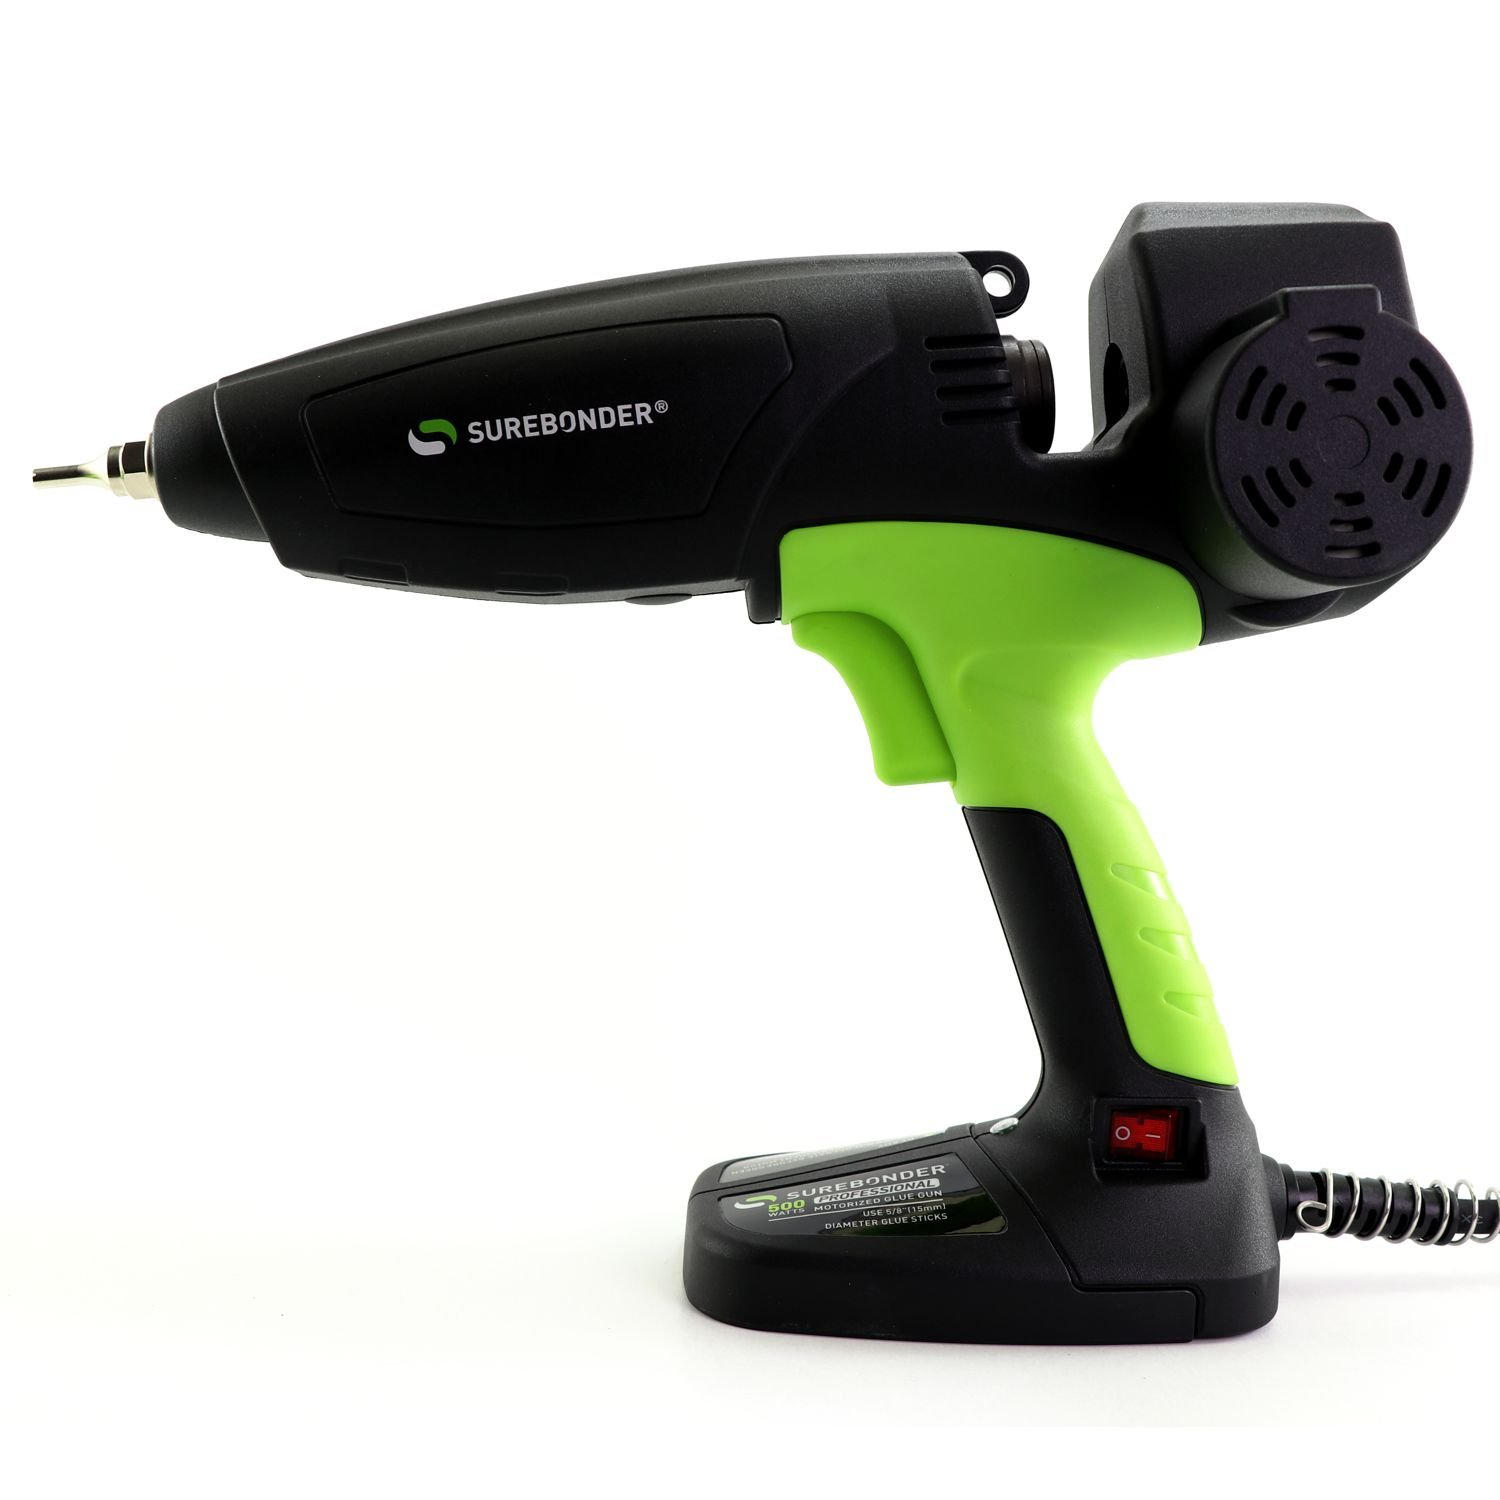 MGG-500 500 Watt Motorized Professional Heavy Duty Hot Glue Gun - Uses oversized, 5/8'' glue sticks